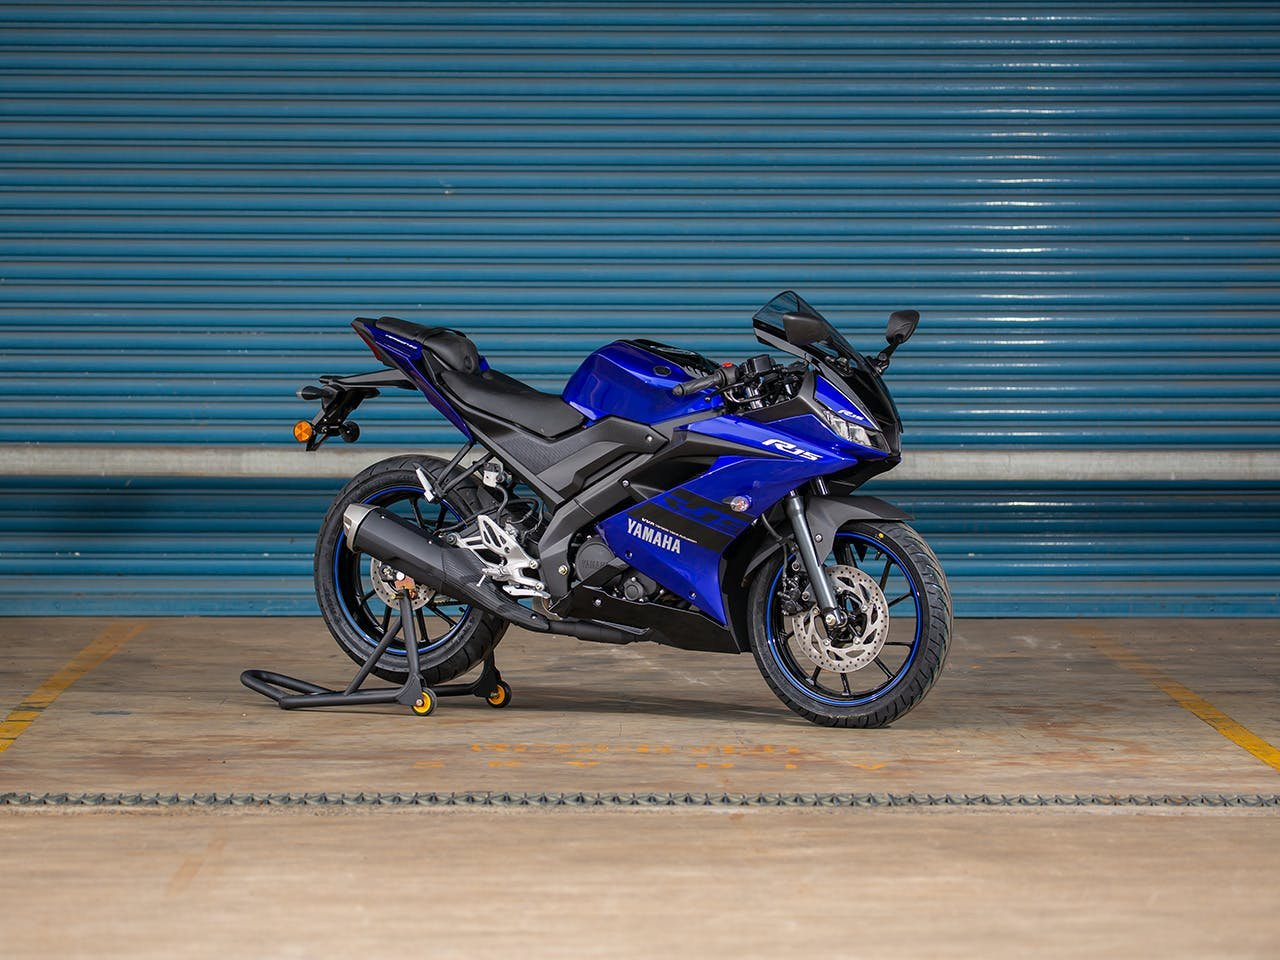 Yamaha YZF-R15 in Racing Blue colour, parked